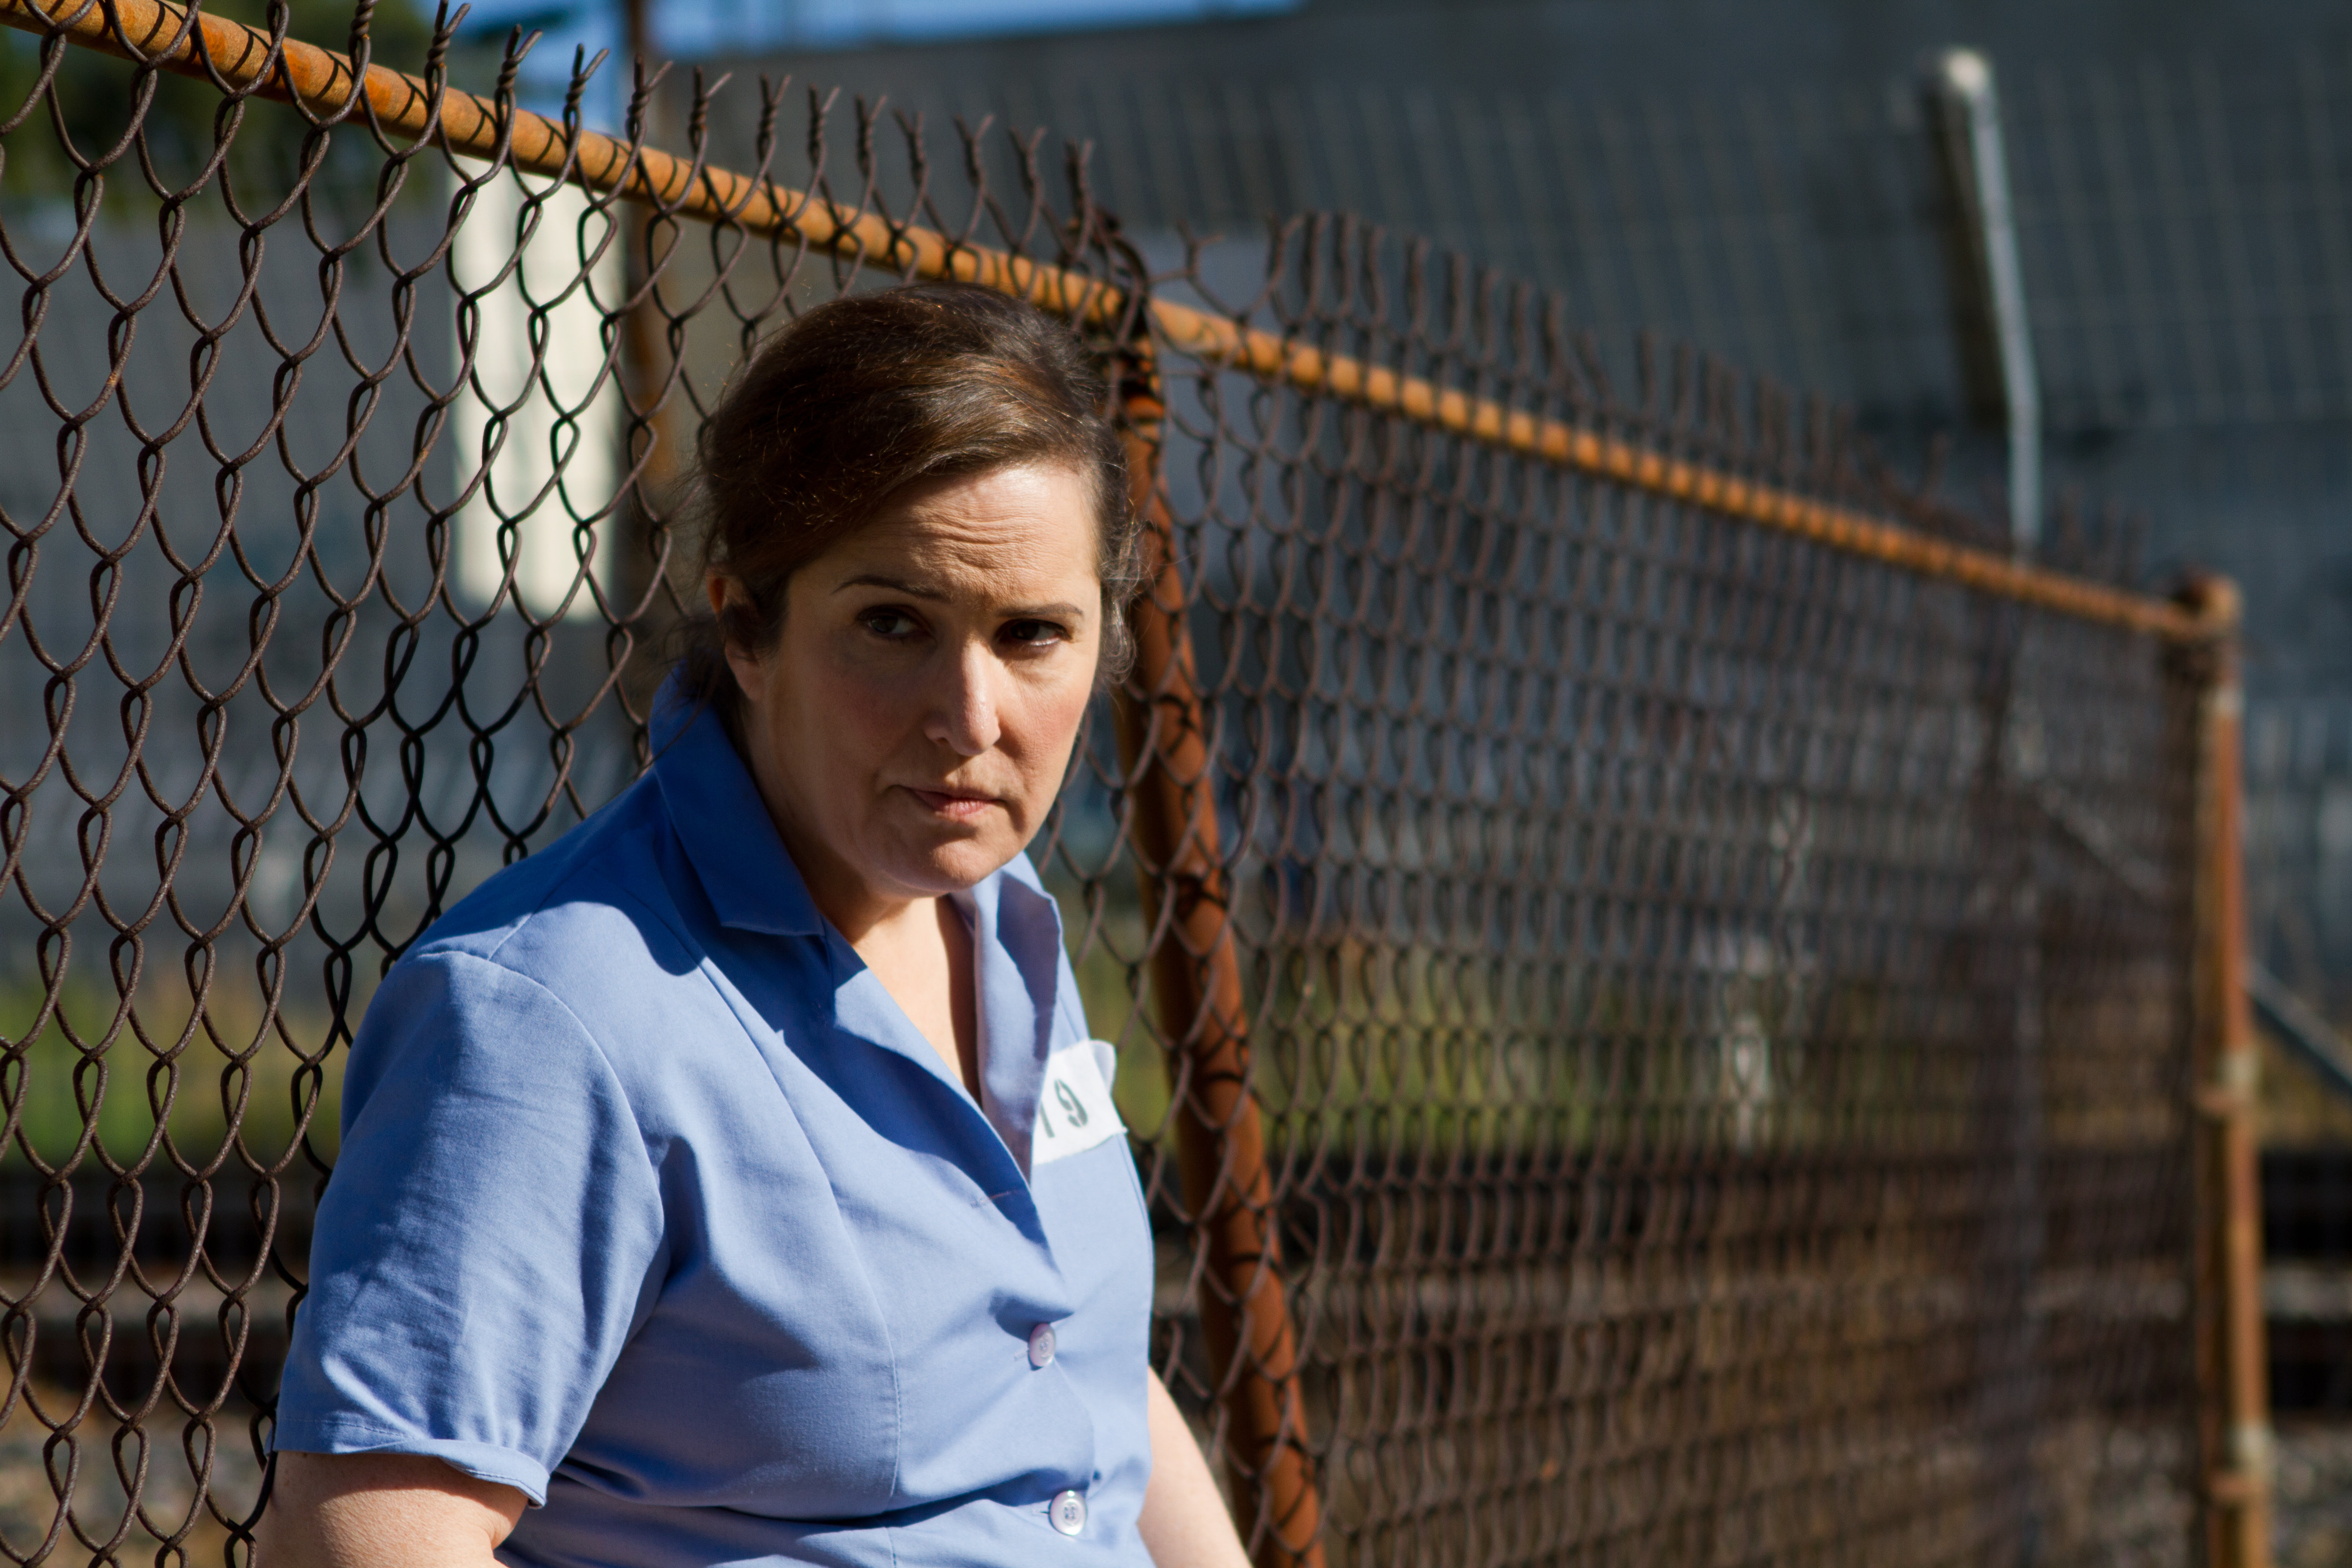 Actress/Director Jillian Armenate leans against the prison yard fence for Kittens in a Cage.